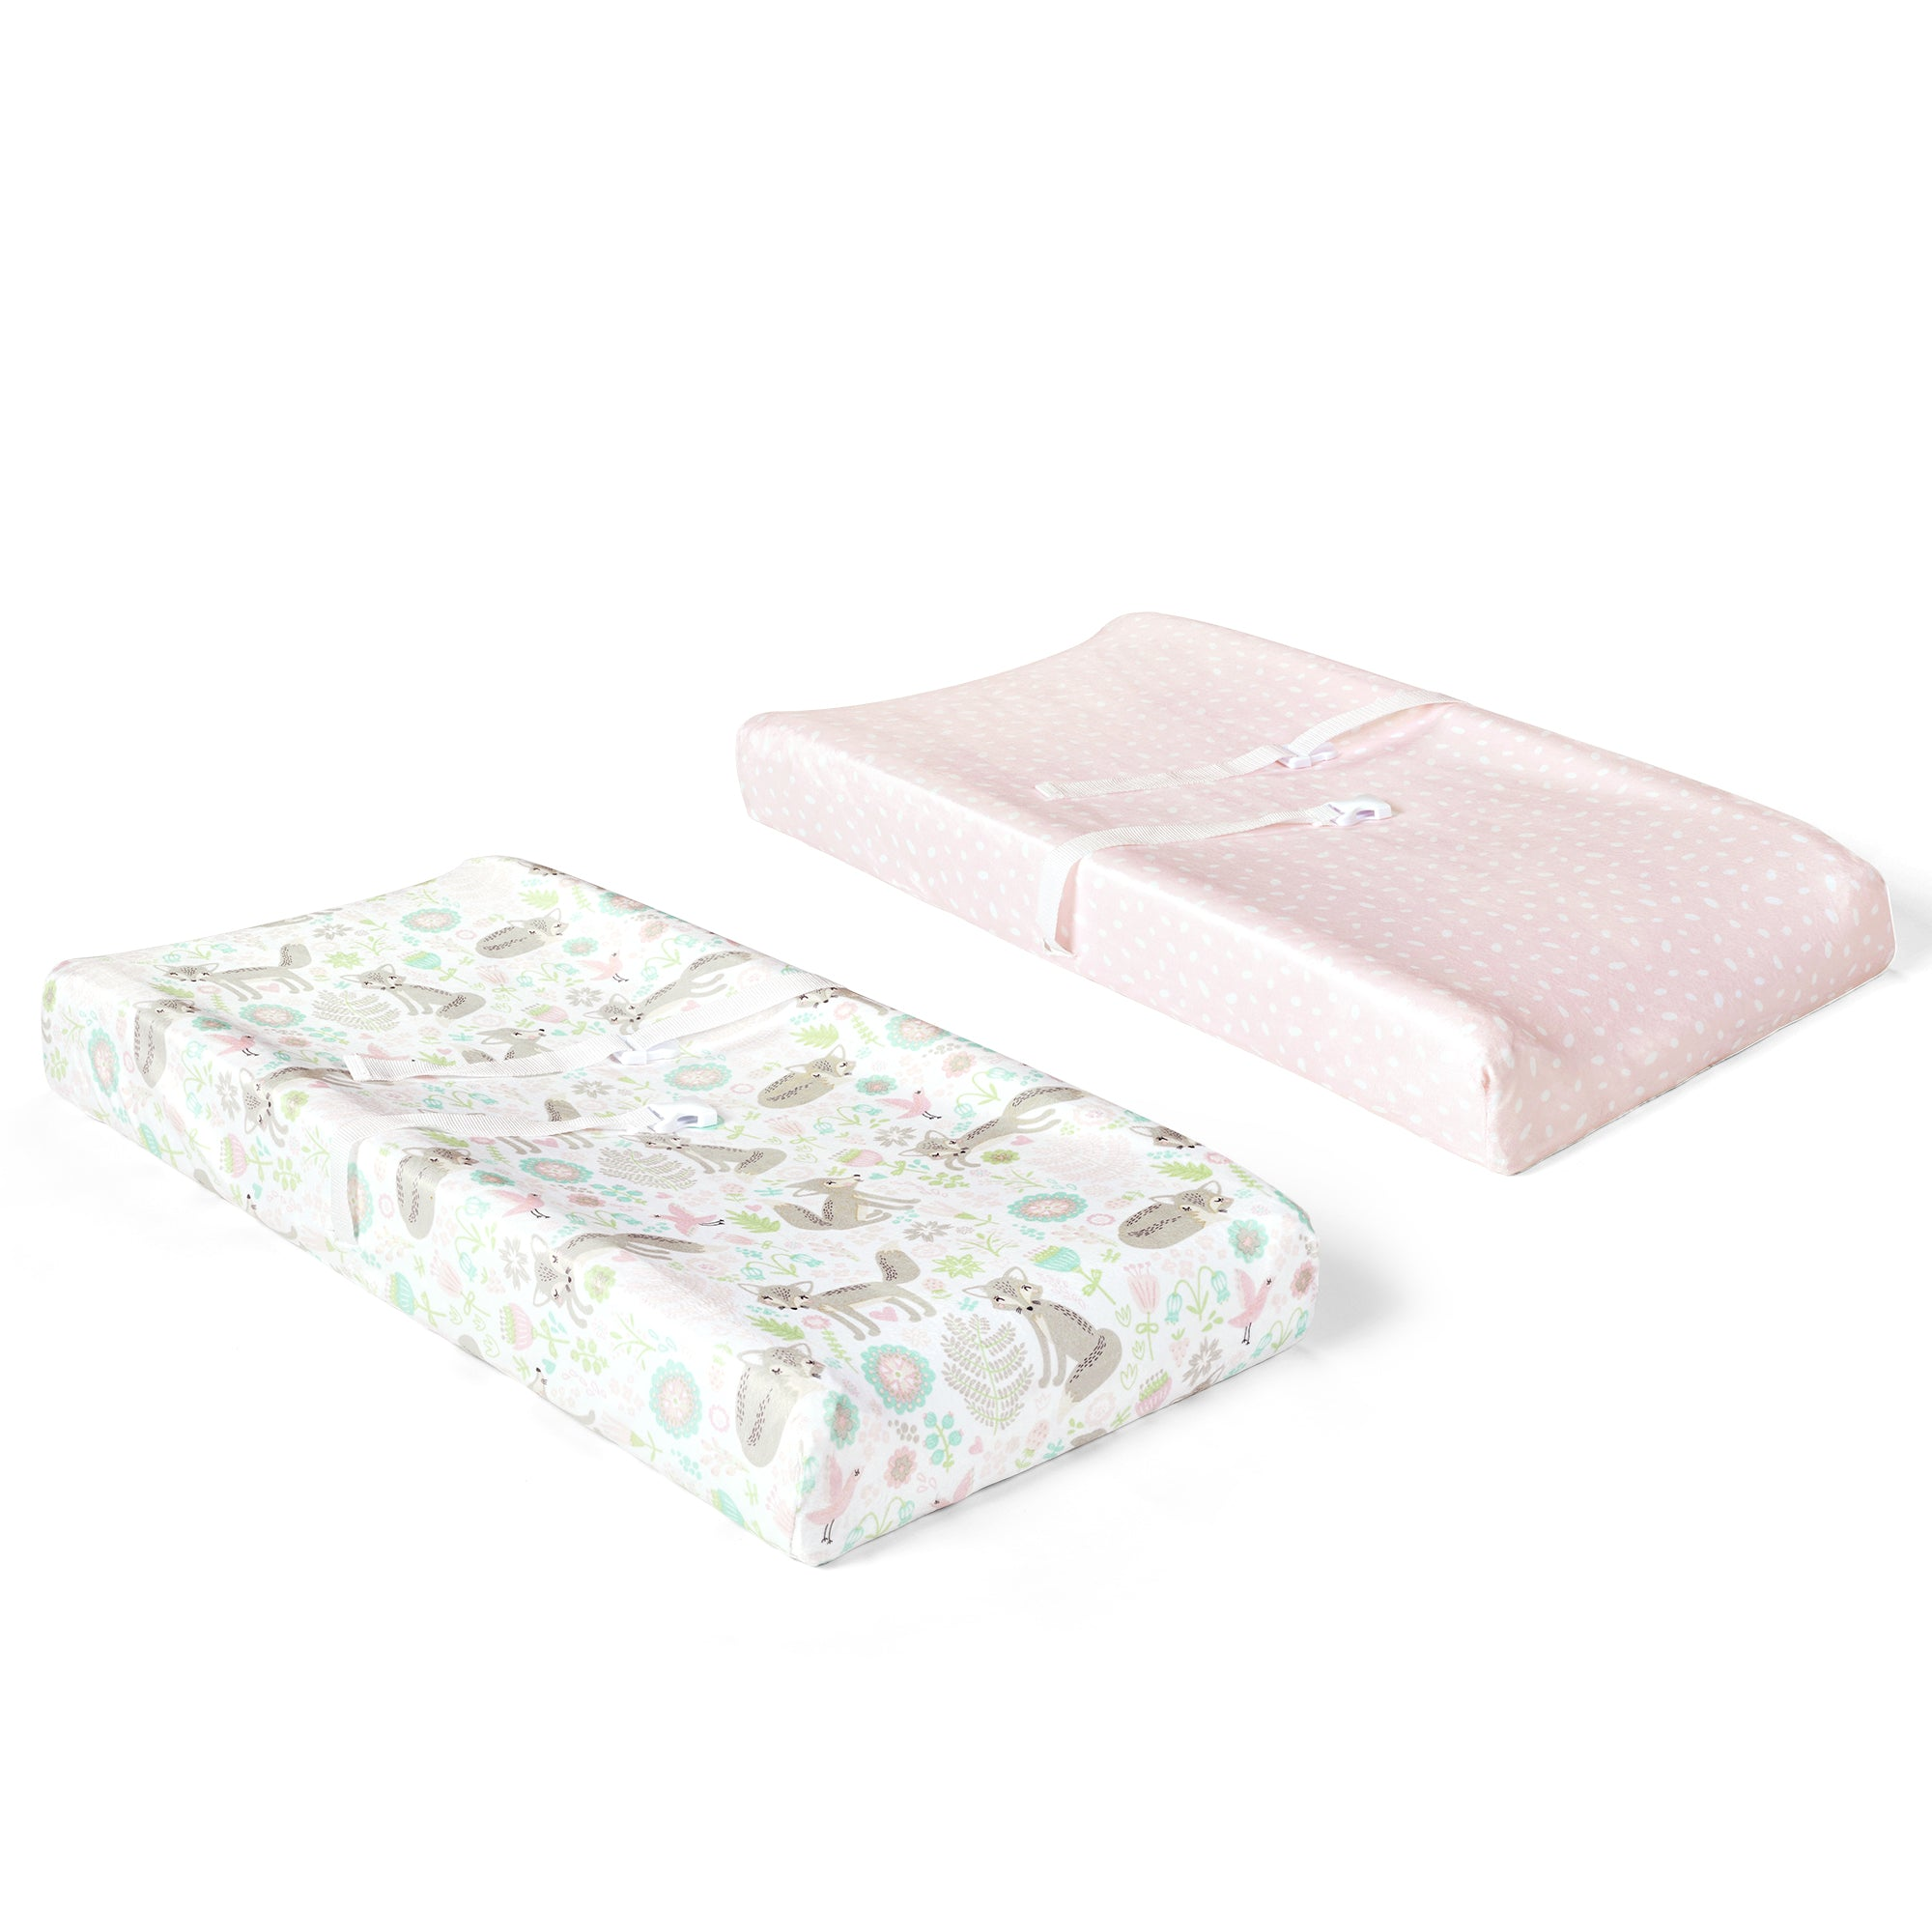 Pixie Fox Geo Micro Mink Changing Pad Cover 2 Pack Set